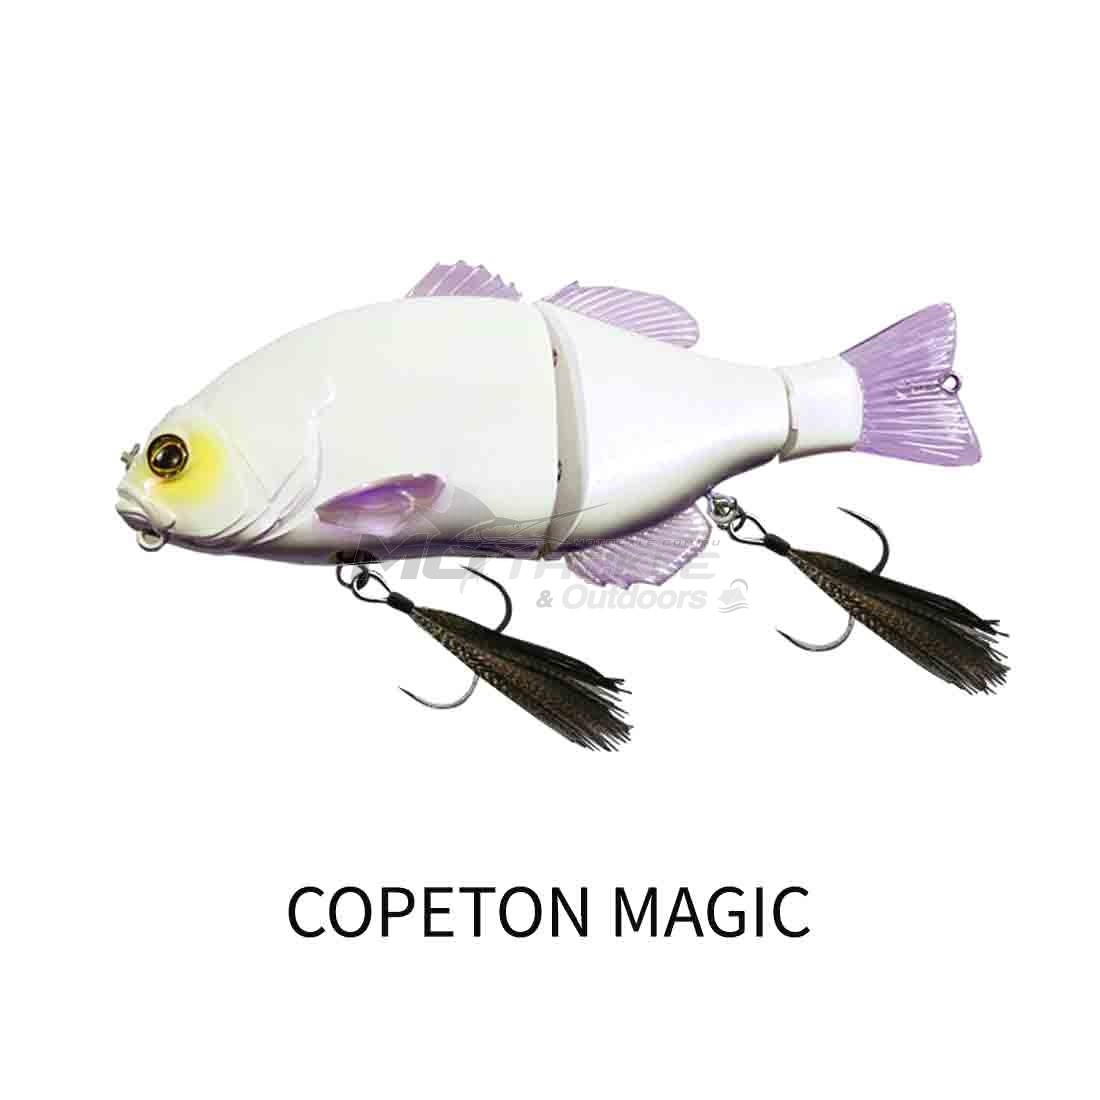 untitled-jackall-gantarel-jointed-swimbait-copeton-magic_2